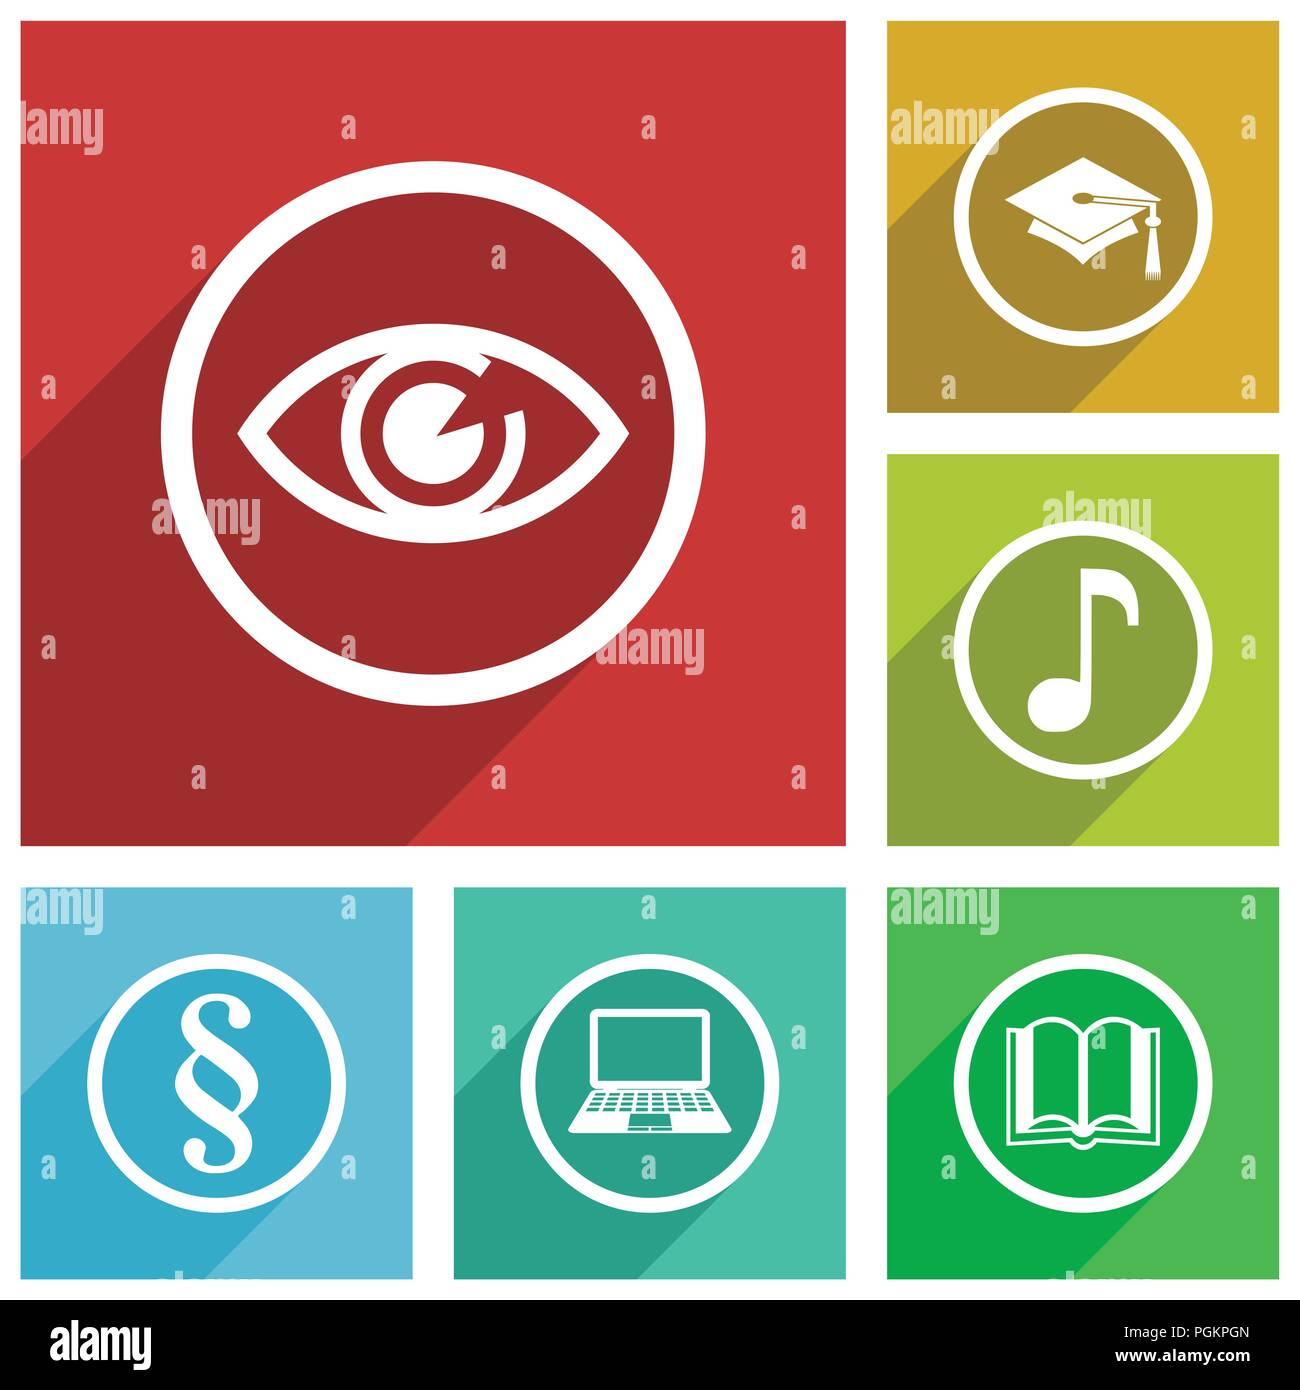 Web and internet science and education vector icons, eye, graduation, note, book, laptop, law flat design banners in eps 10. - Stock Image